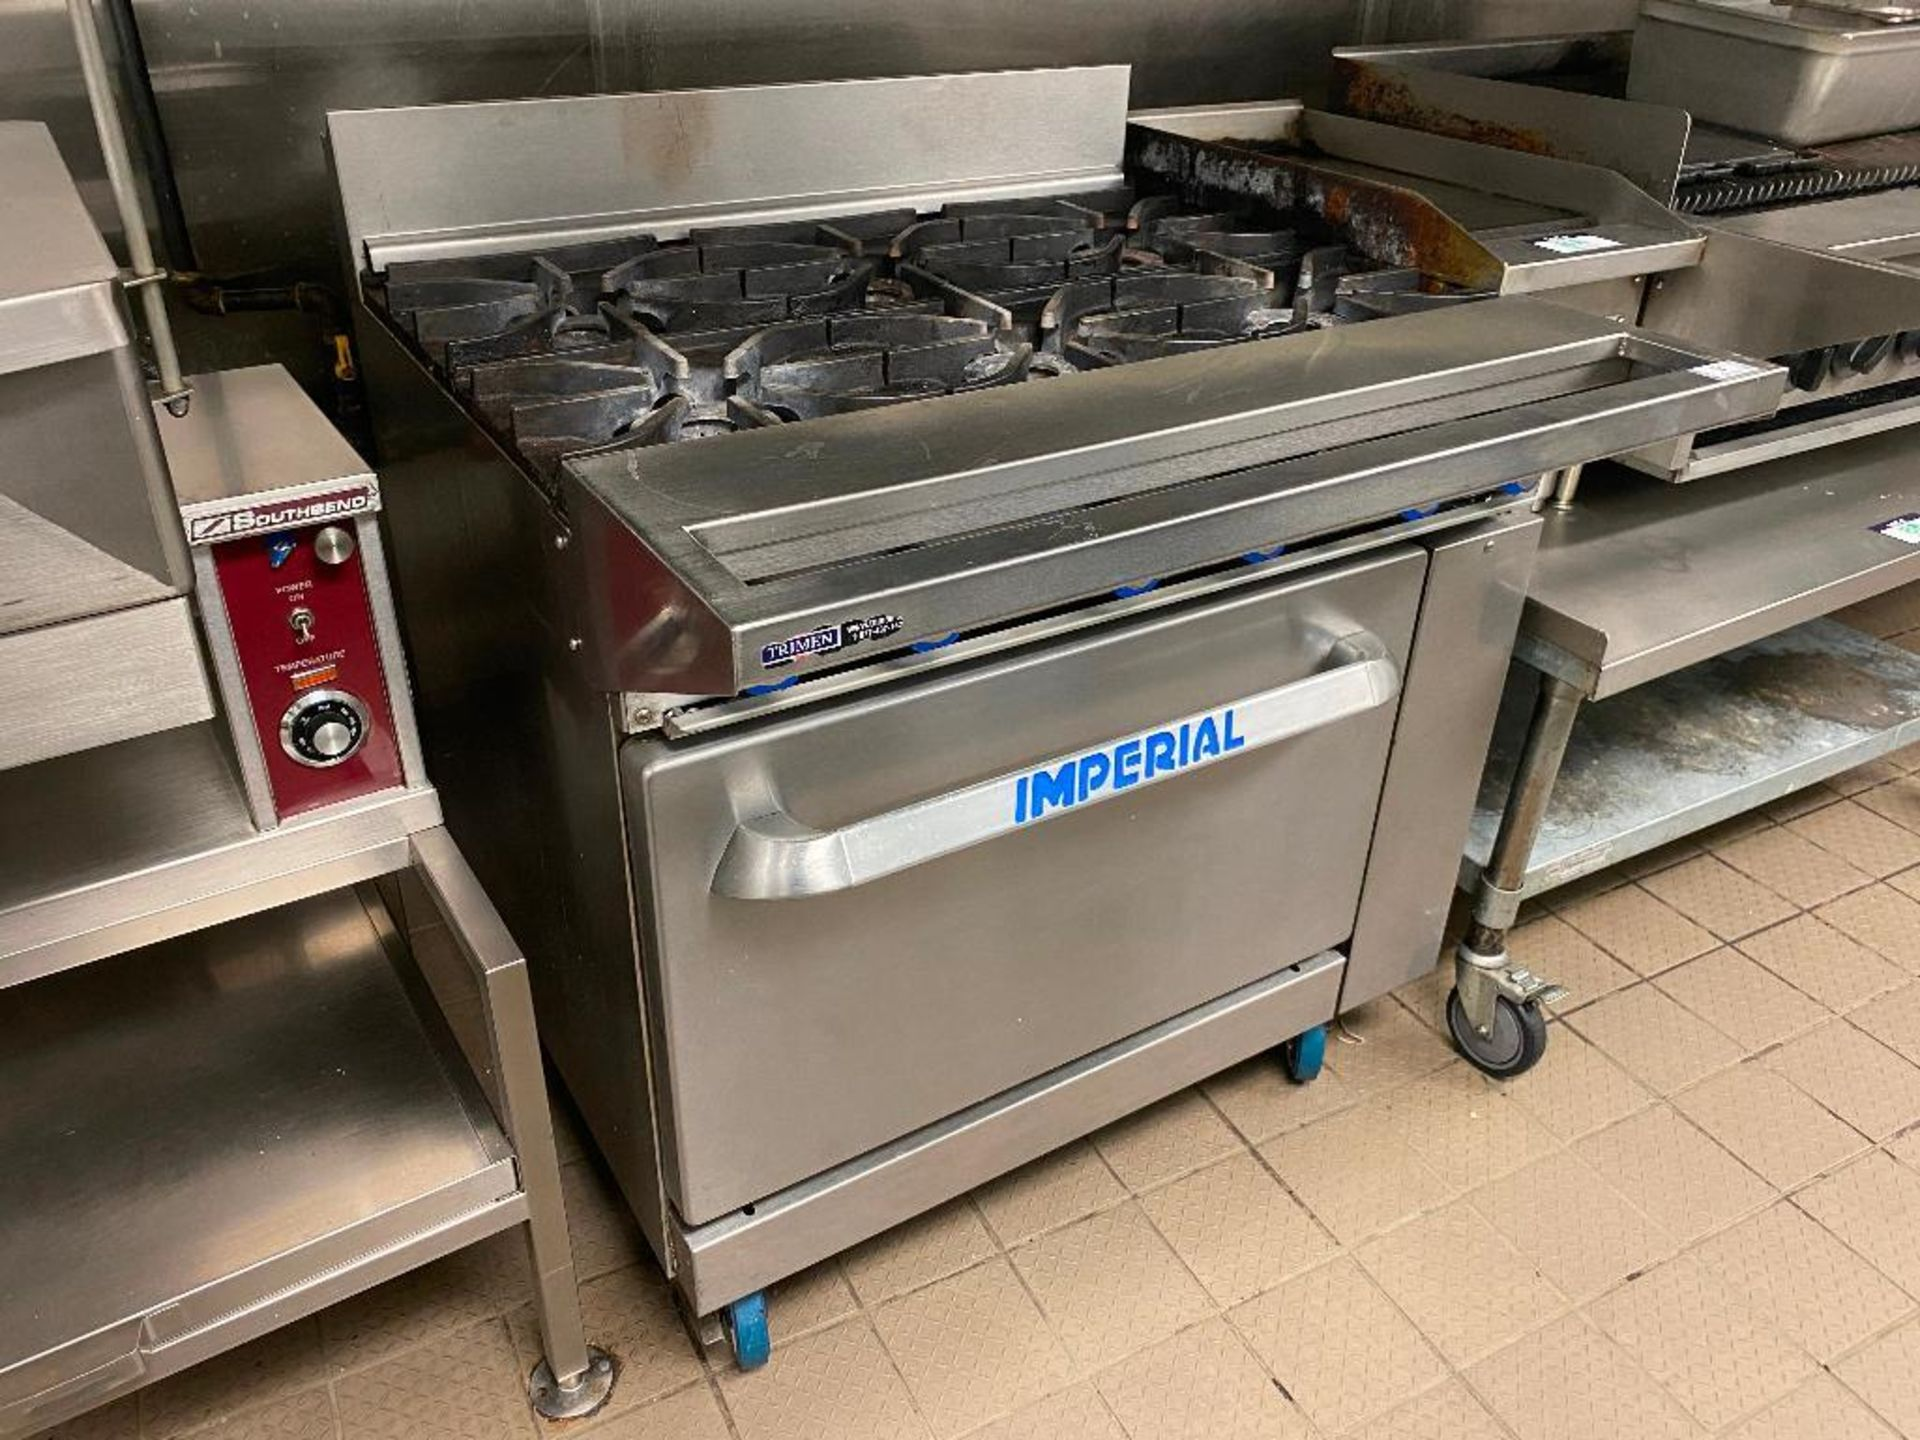 IMPERIAL 6 BURNER RANGE - NOTE: REQUIRES DISCONNECT, PLEASE INSPECT - Image 2 of 5